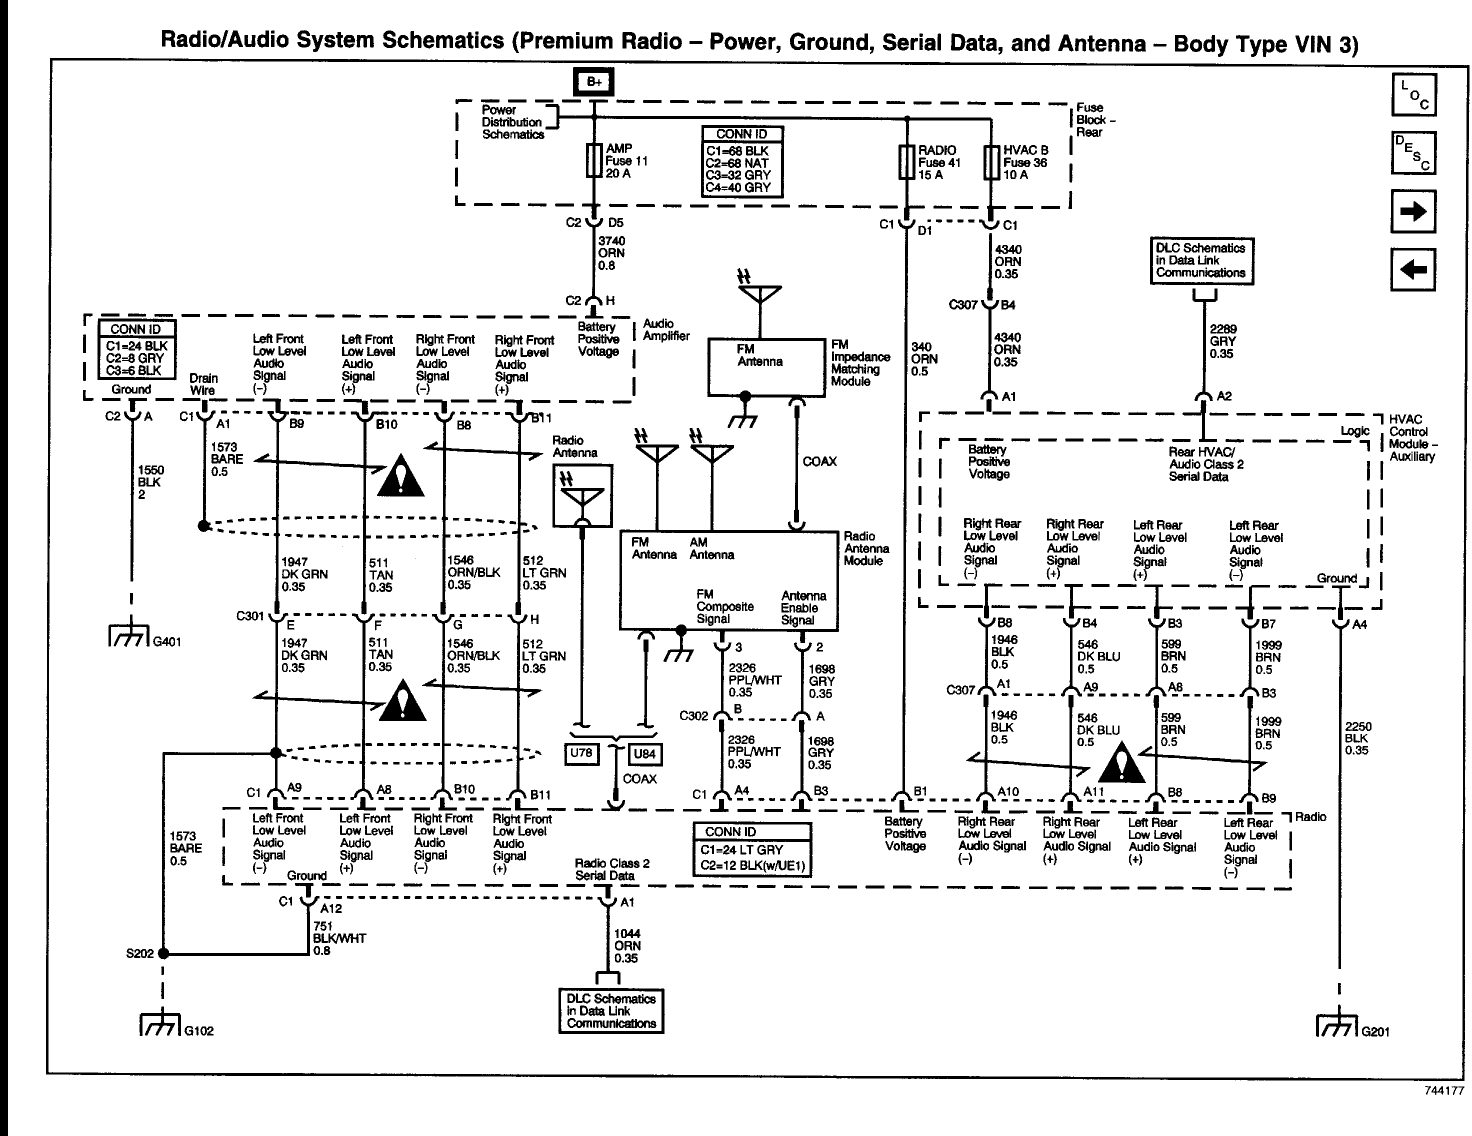 2004 gmc sierra radio wiring diagram | free wiring diagram 2013 gmc sierra wiring diagram 96 gmc sierra wiring diagram